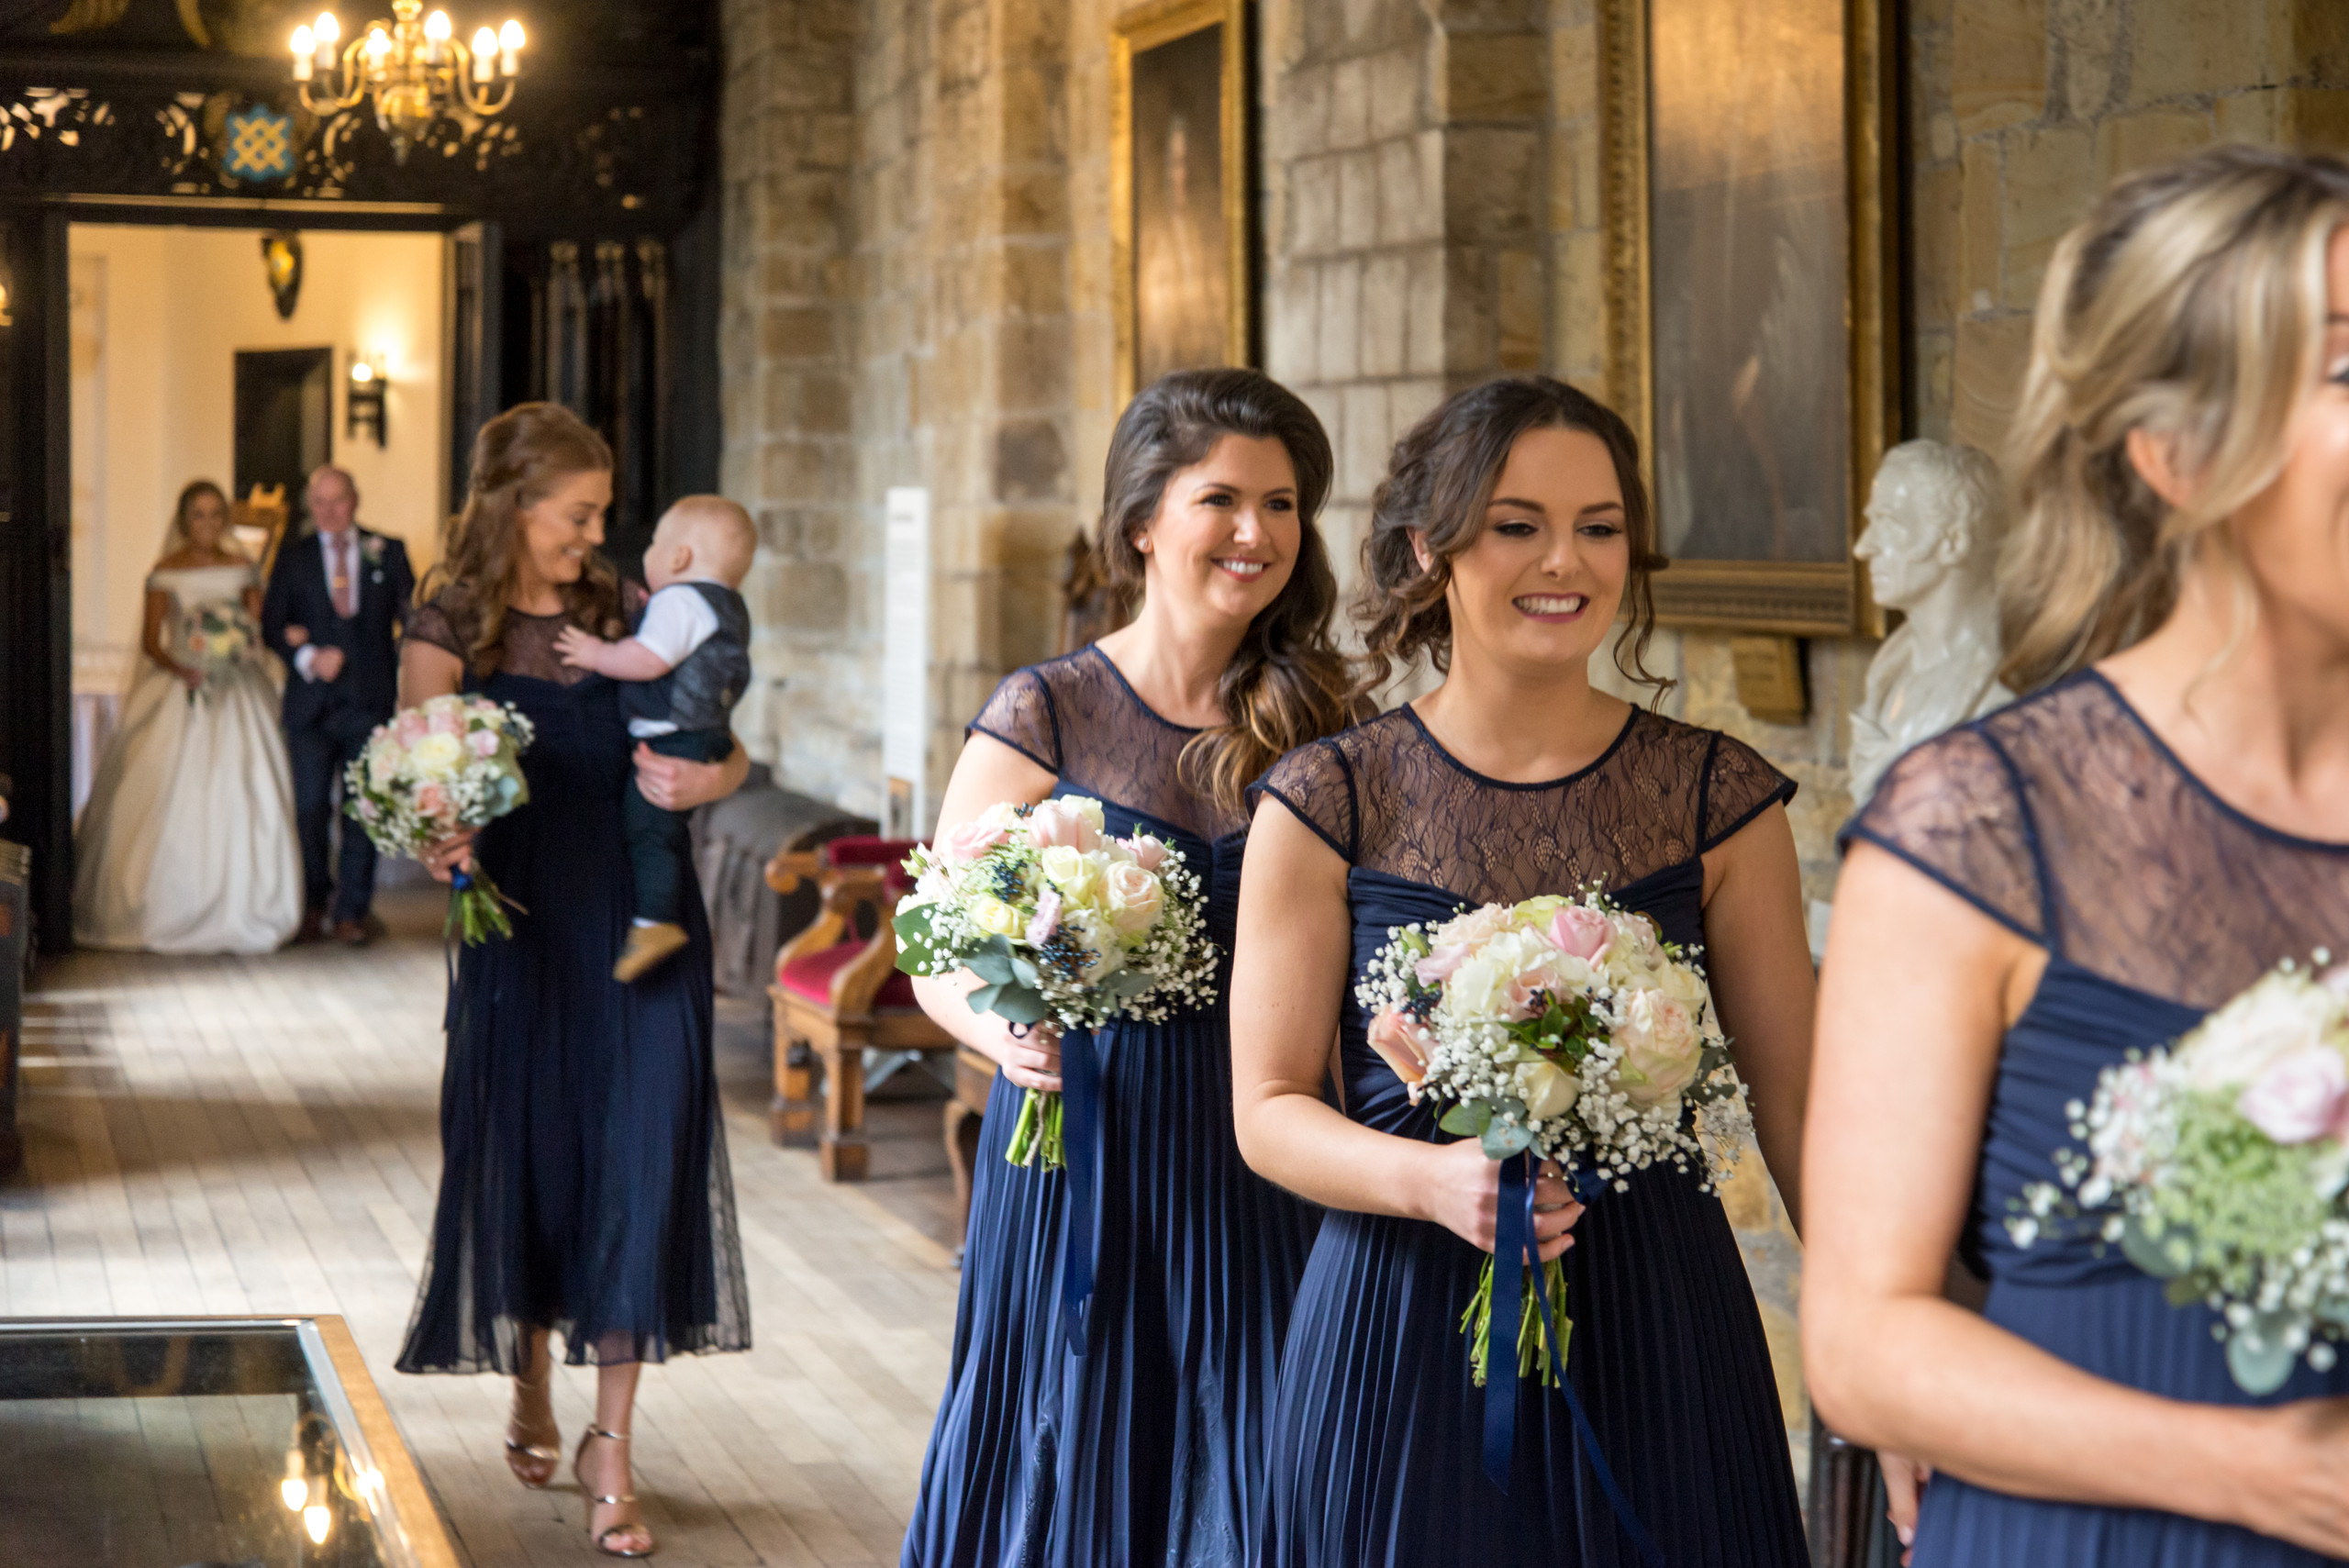 Photograph of bride and relaxed, smiling bridesmaids with bouquets in corridor of historic Tunstall Chapel of Durham Castle on day of wedding ceremony